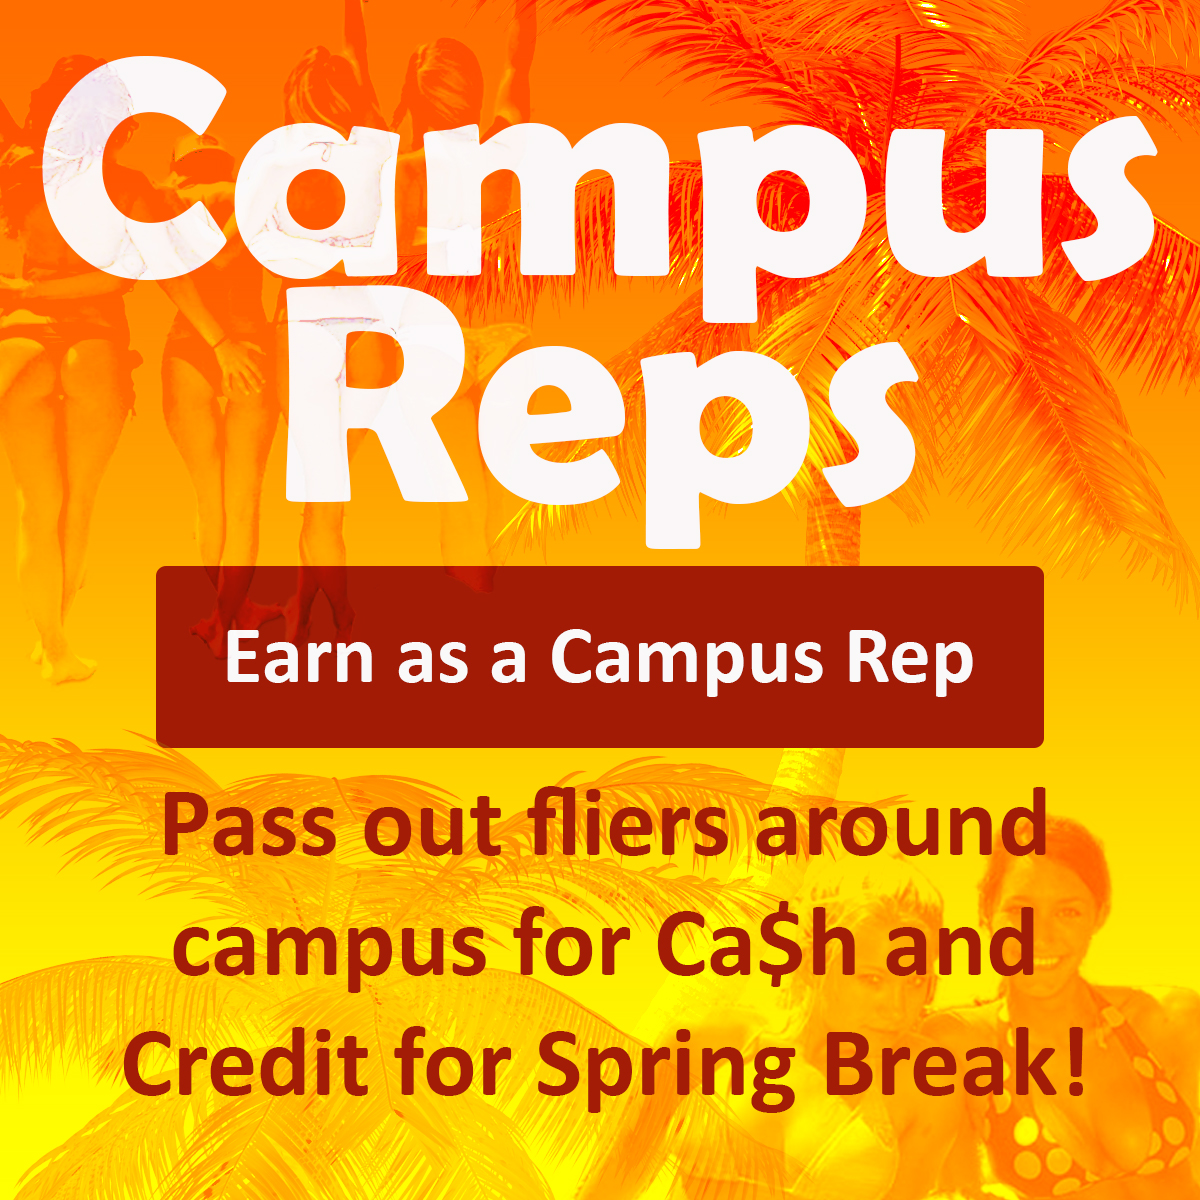 Click Here to Get Started as a Campus Rep